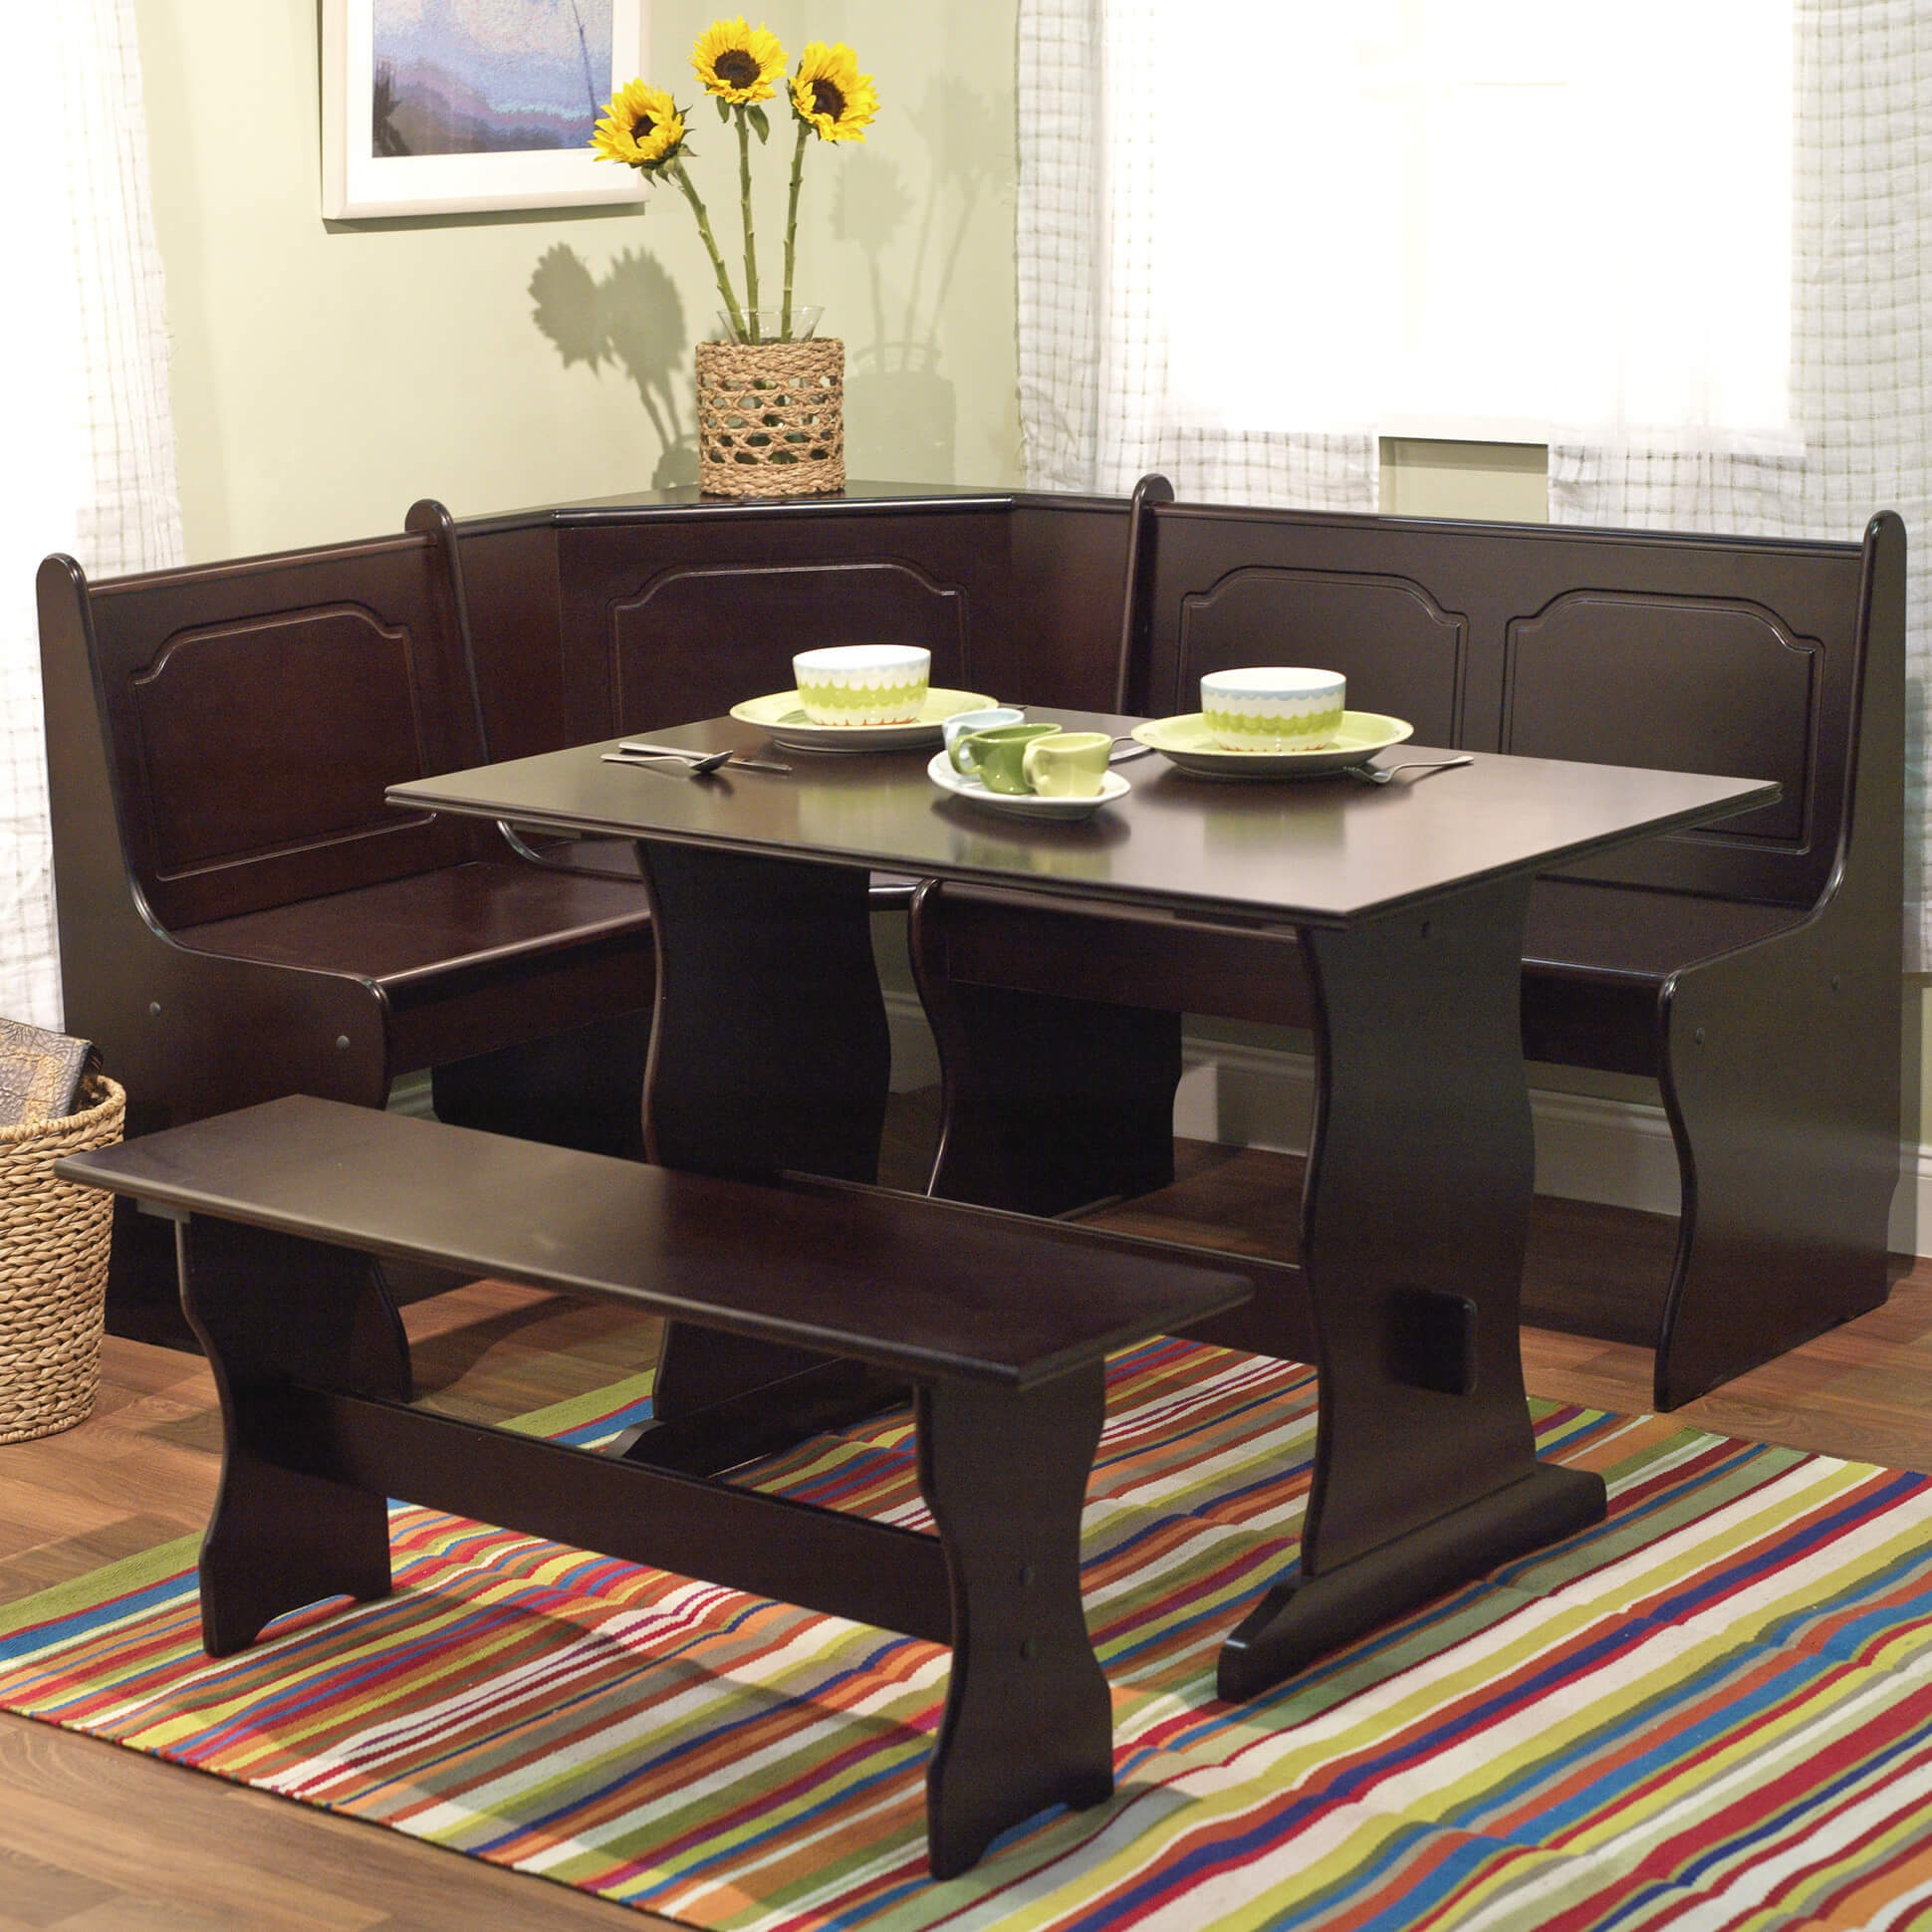 Kitchen Table Corner Bench Set Kitchen Decor Sets